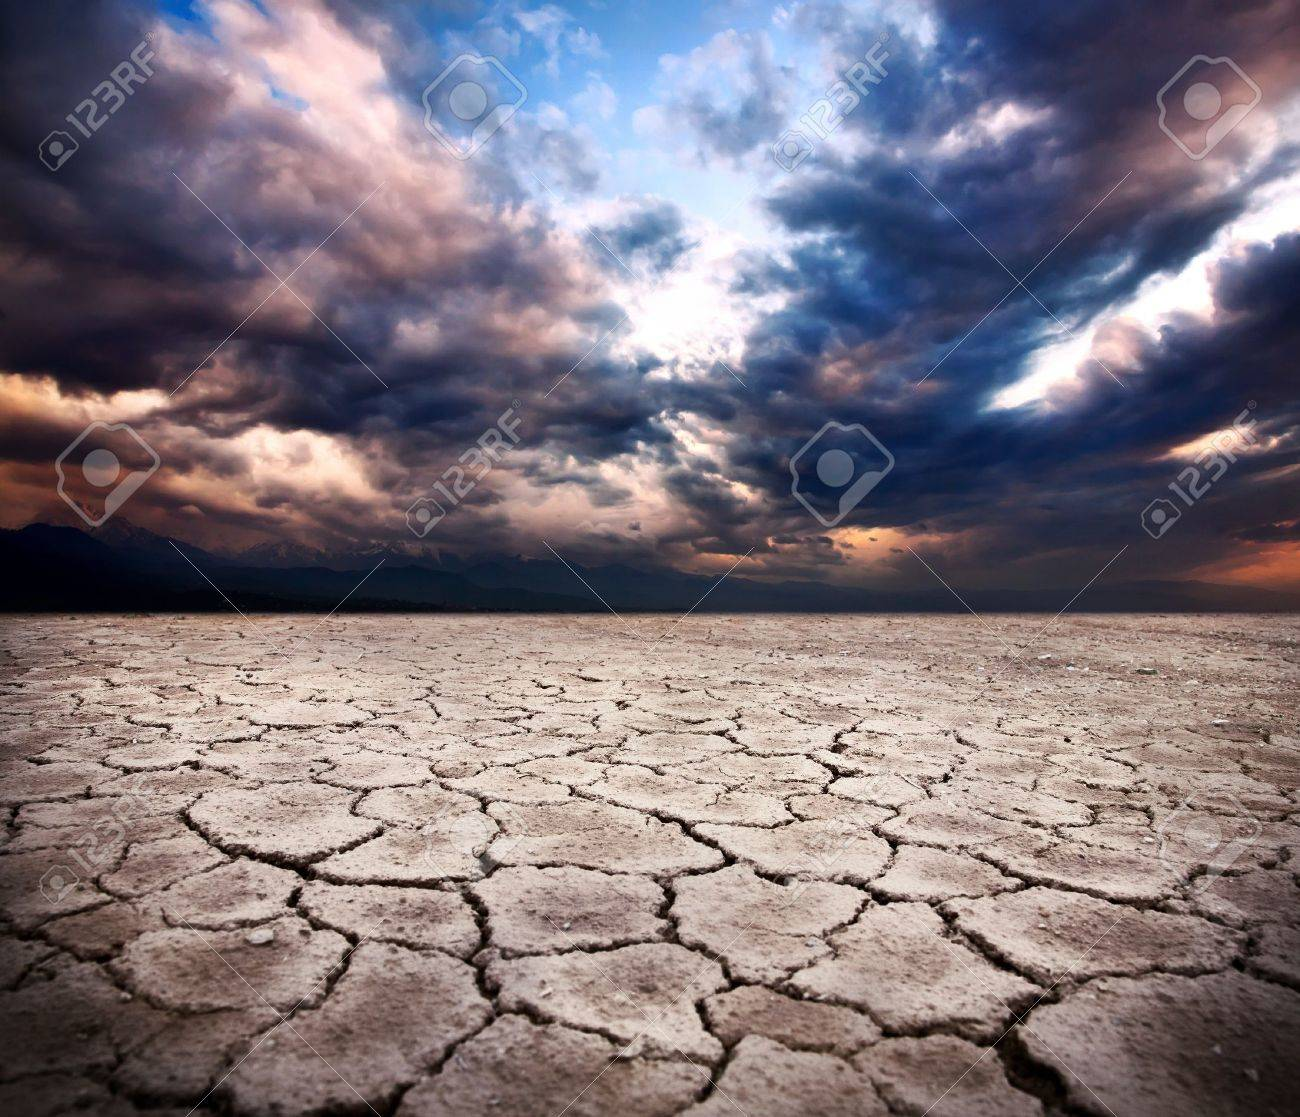 drought earth and storm dramatic sky at background Stock Photo - 9726905